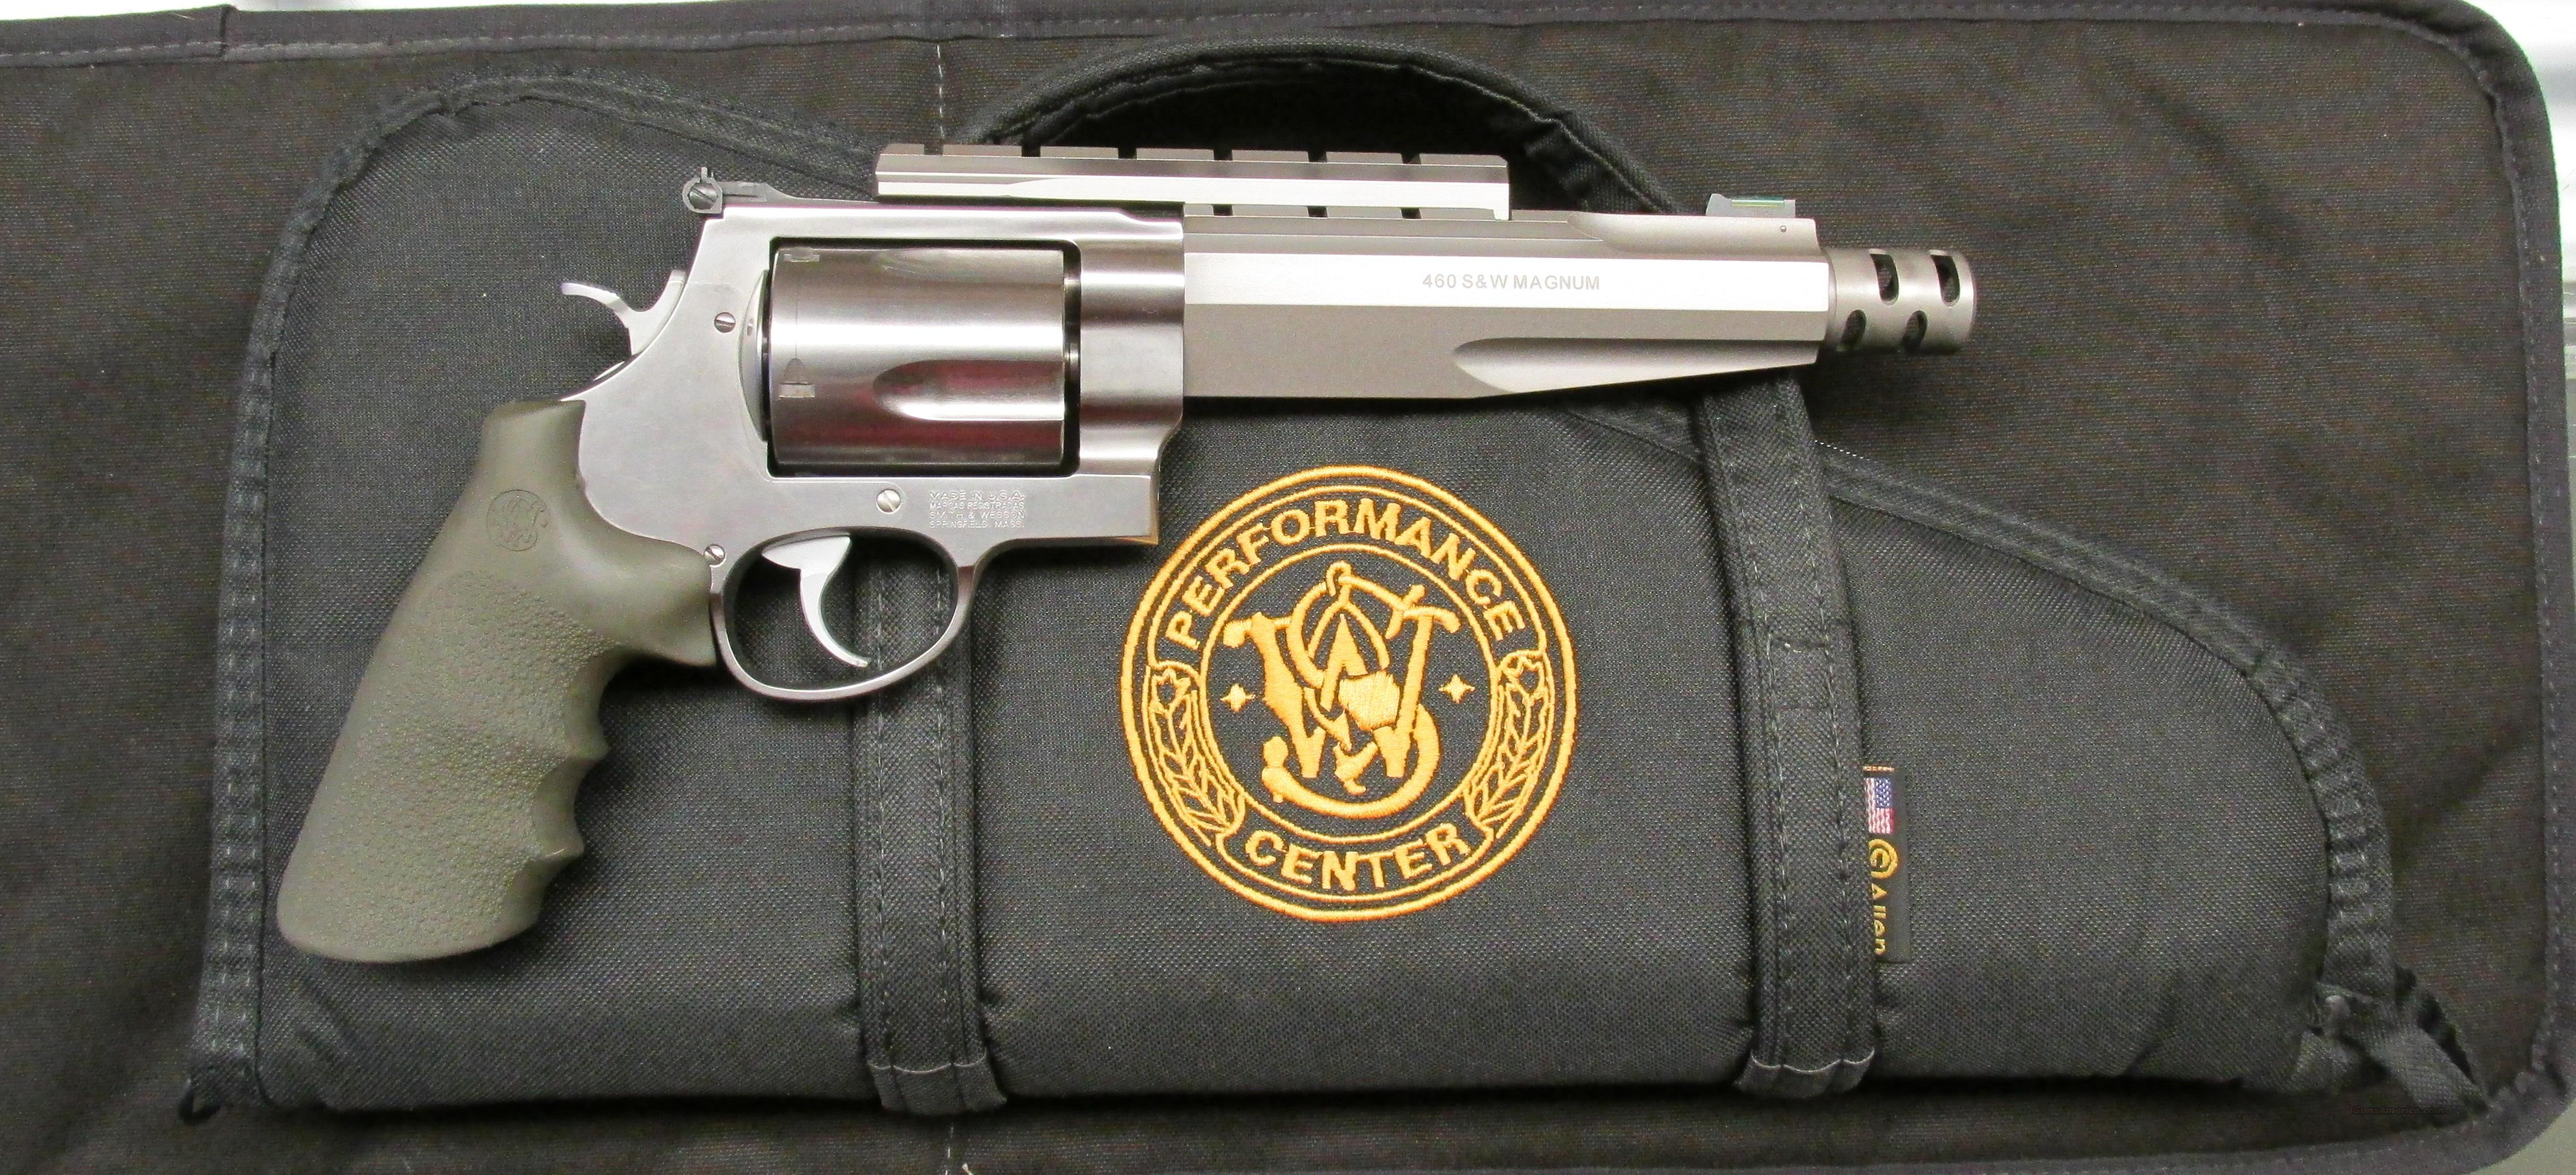 S&W Model 460 Performance Center  Guns > Pistols > Smith & Wesson Revolvers > Performance Center